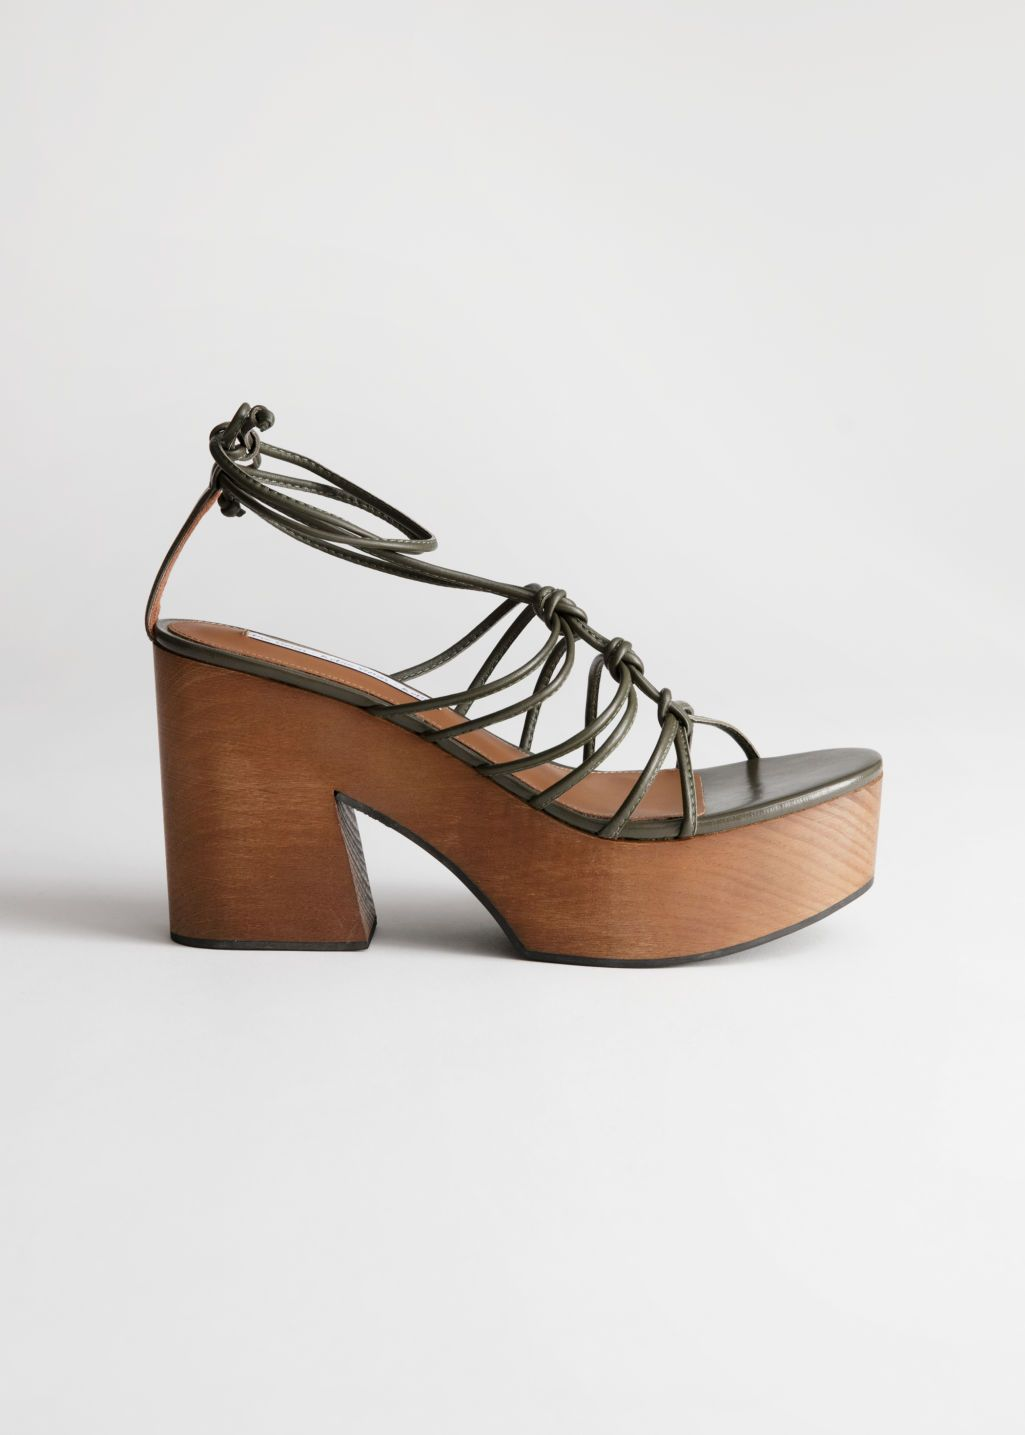 Lace Up Wooden Platforms Khaki High heels & Other